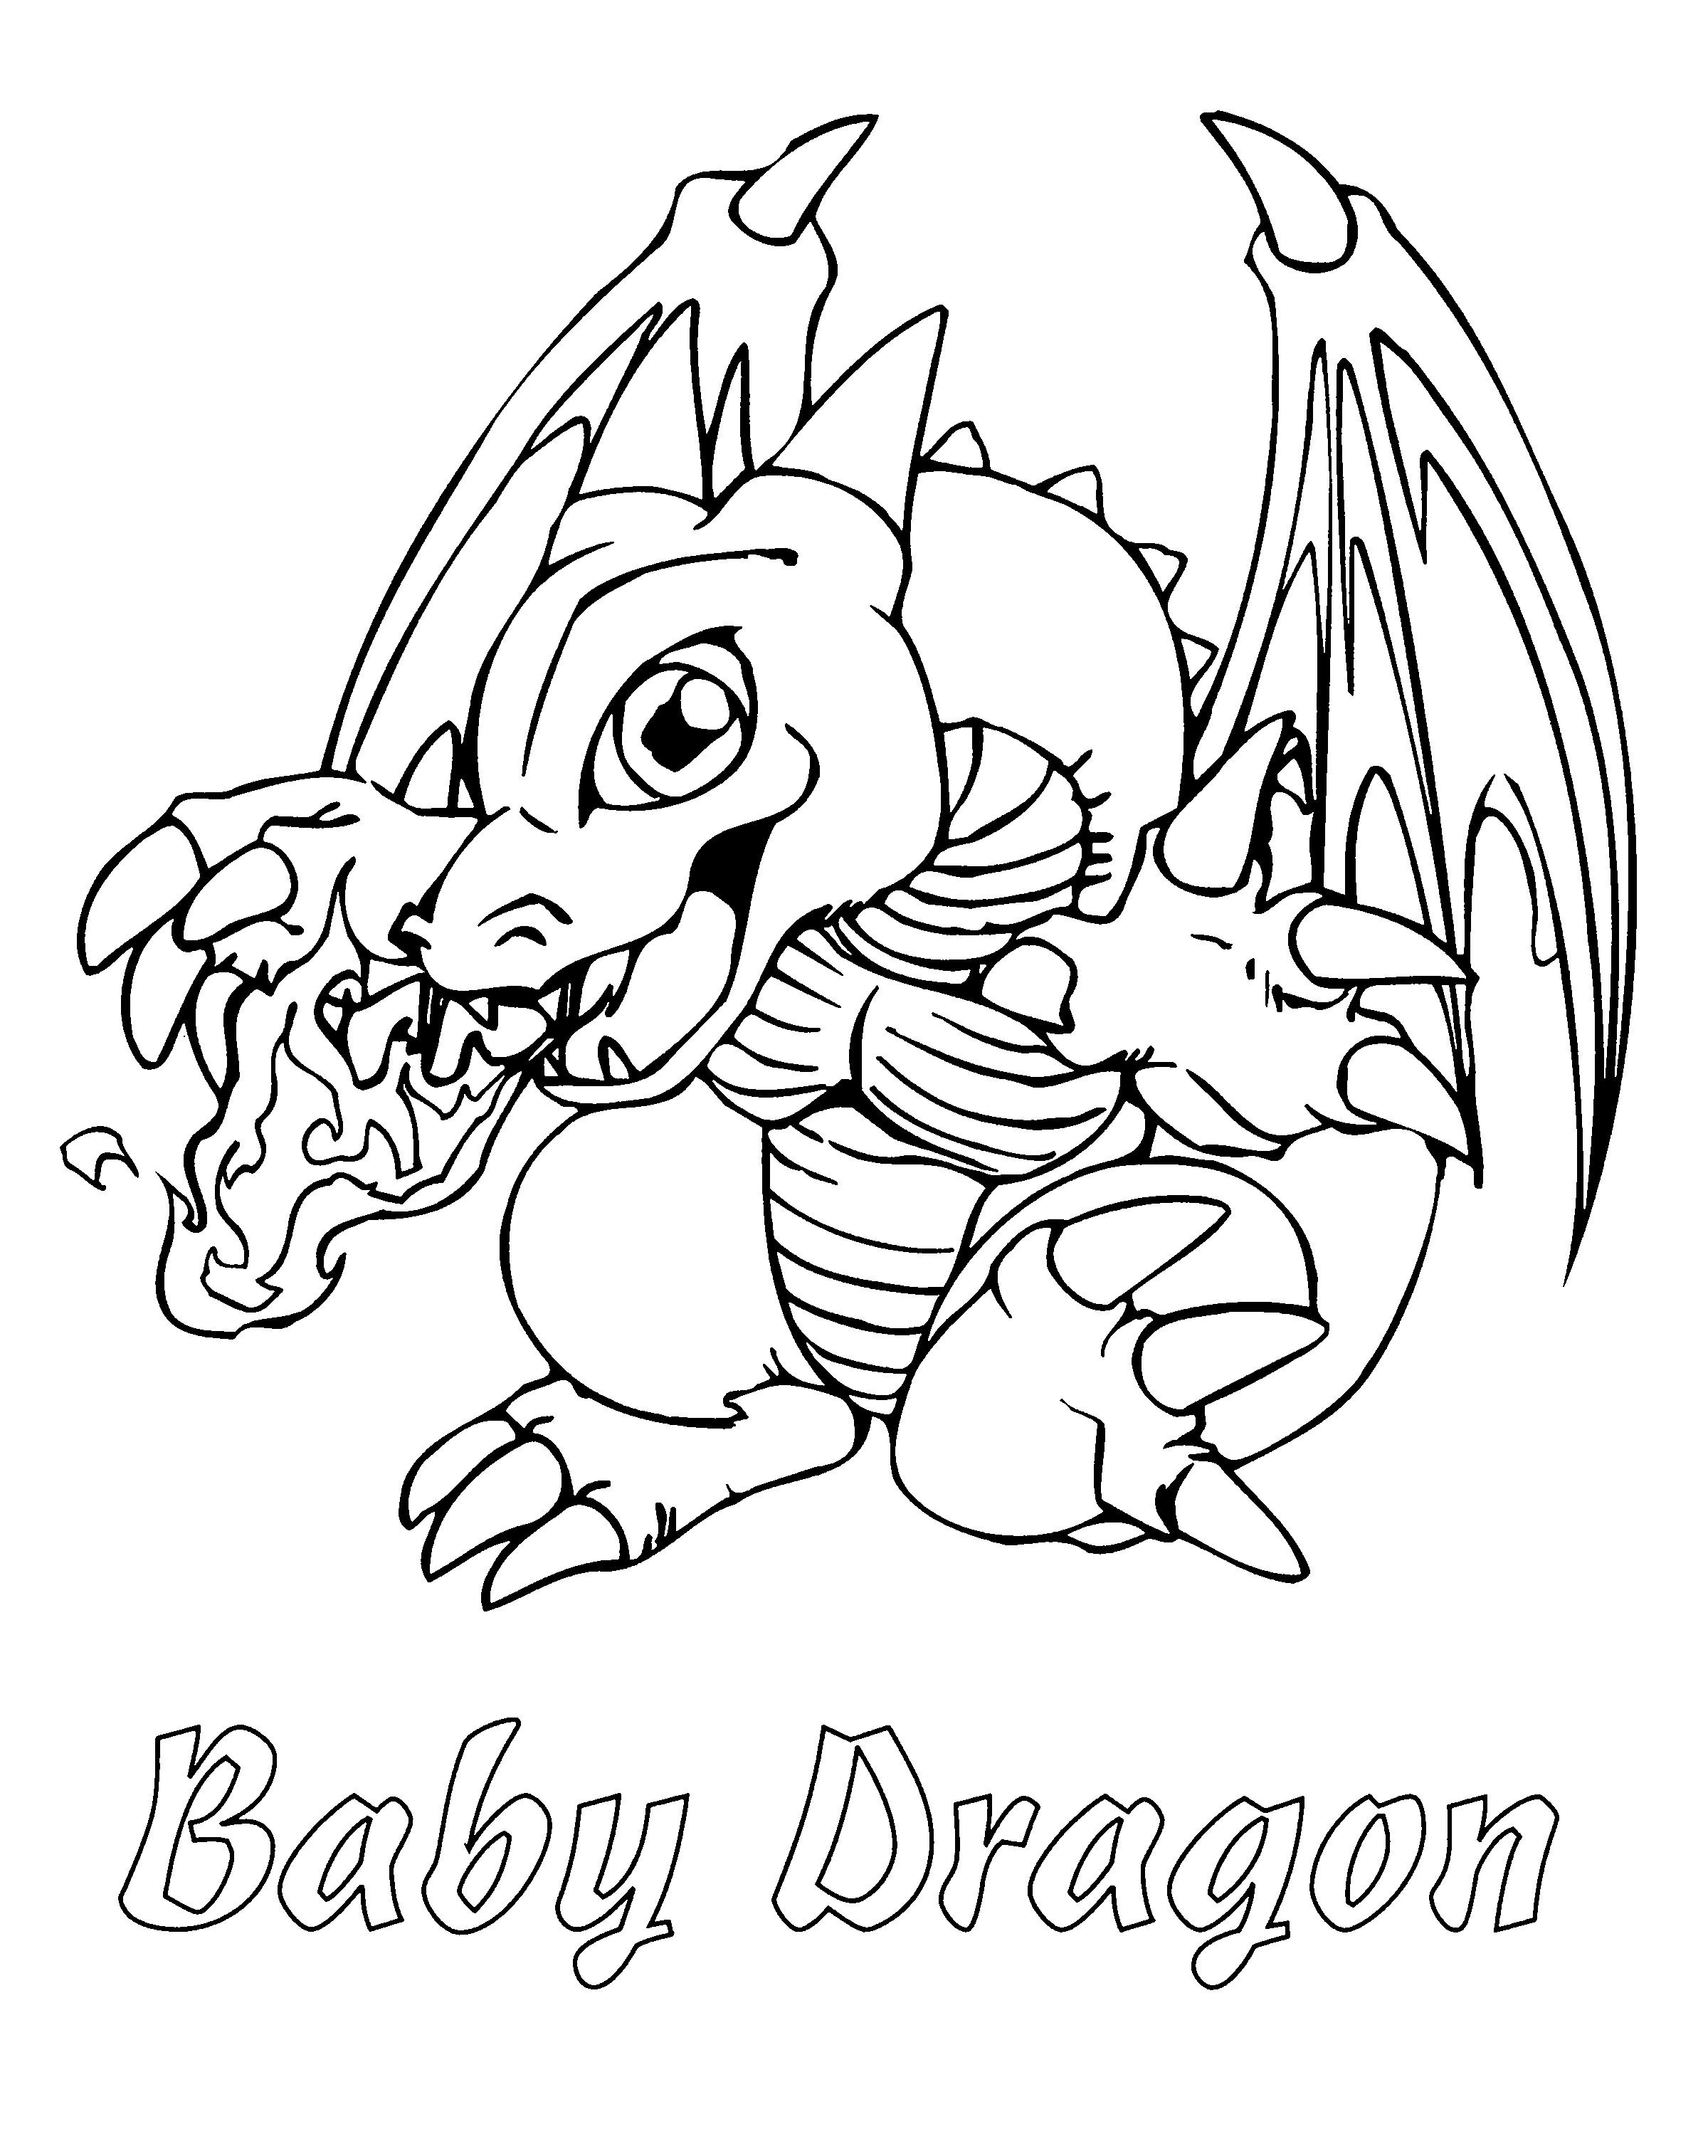 Baby Dragon Coloring Pages | Dragons :-) | Pinterest